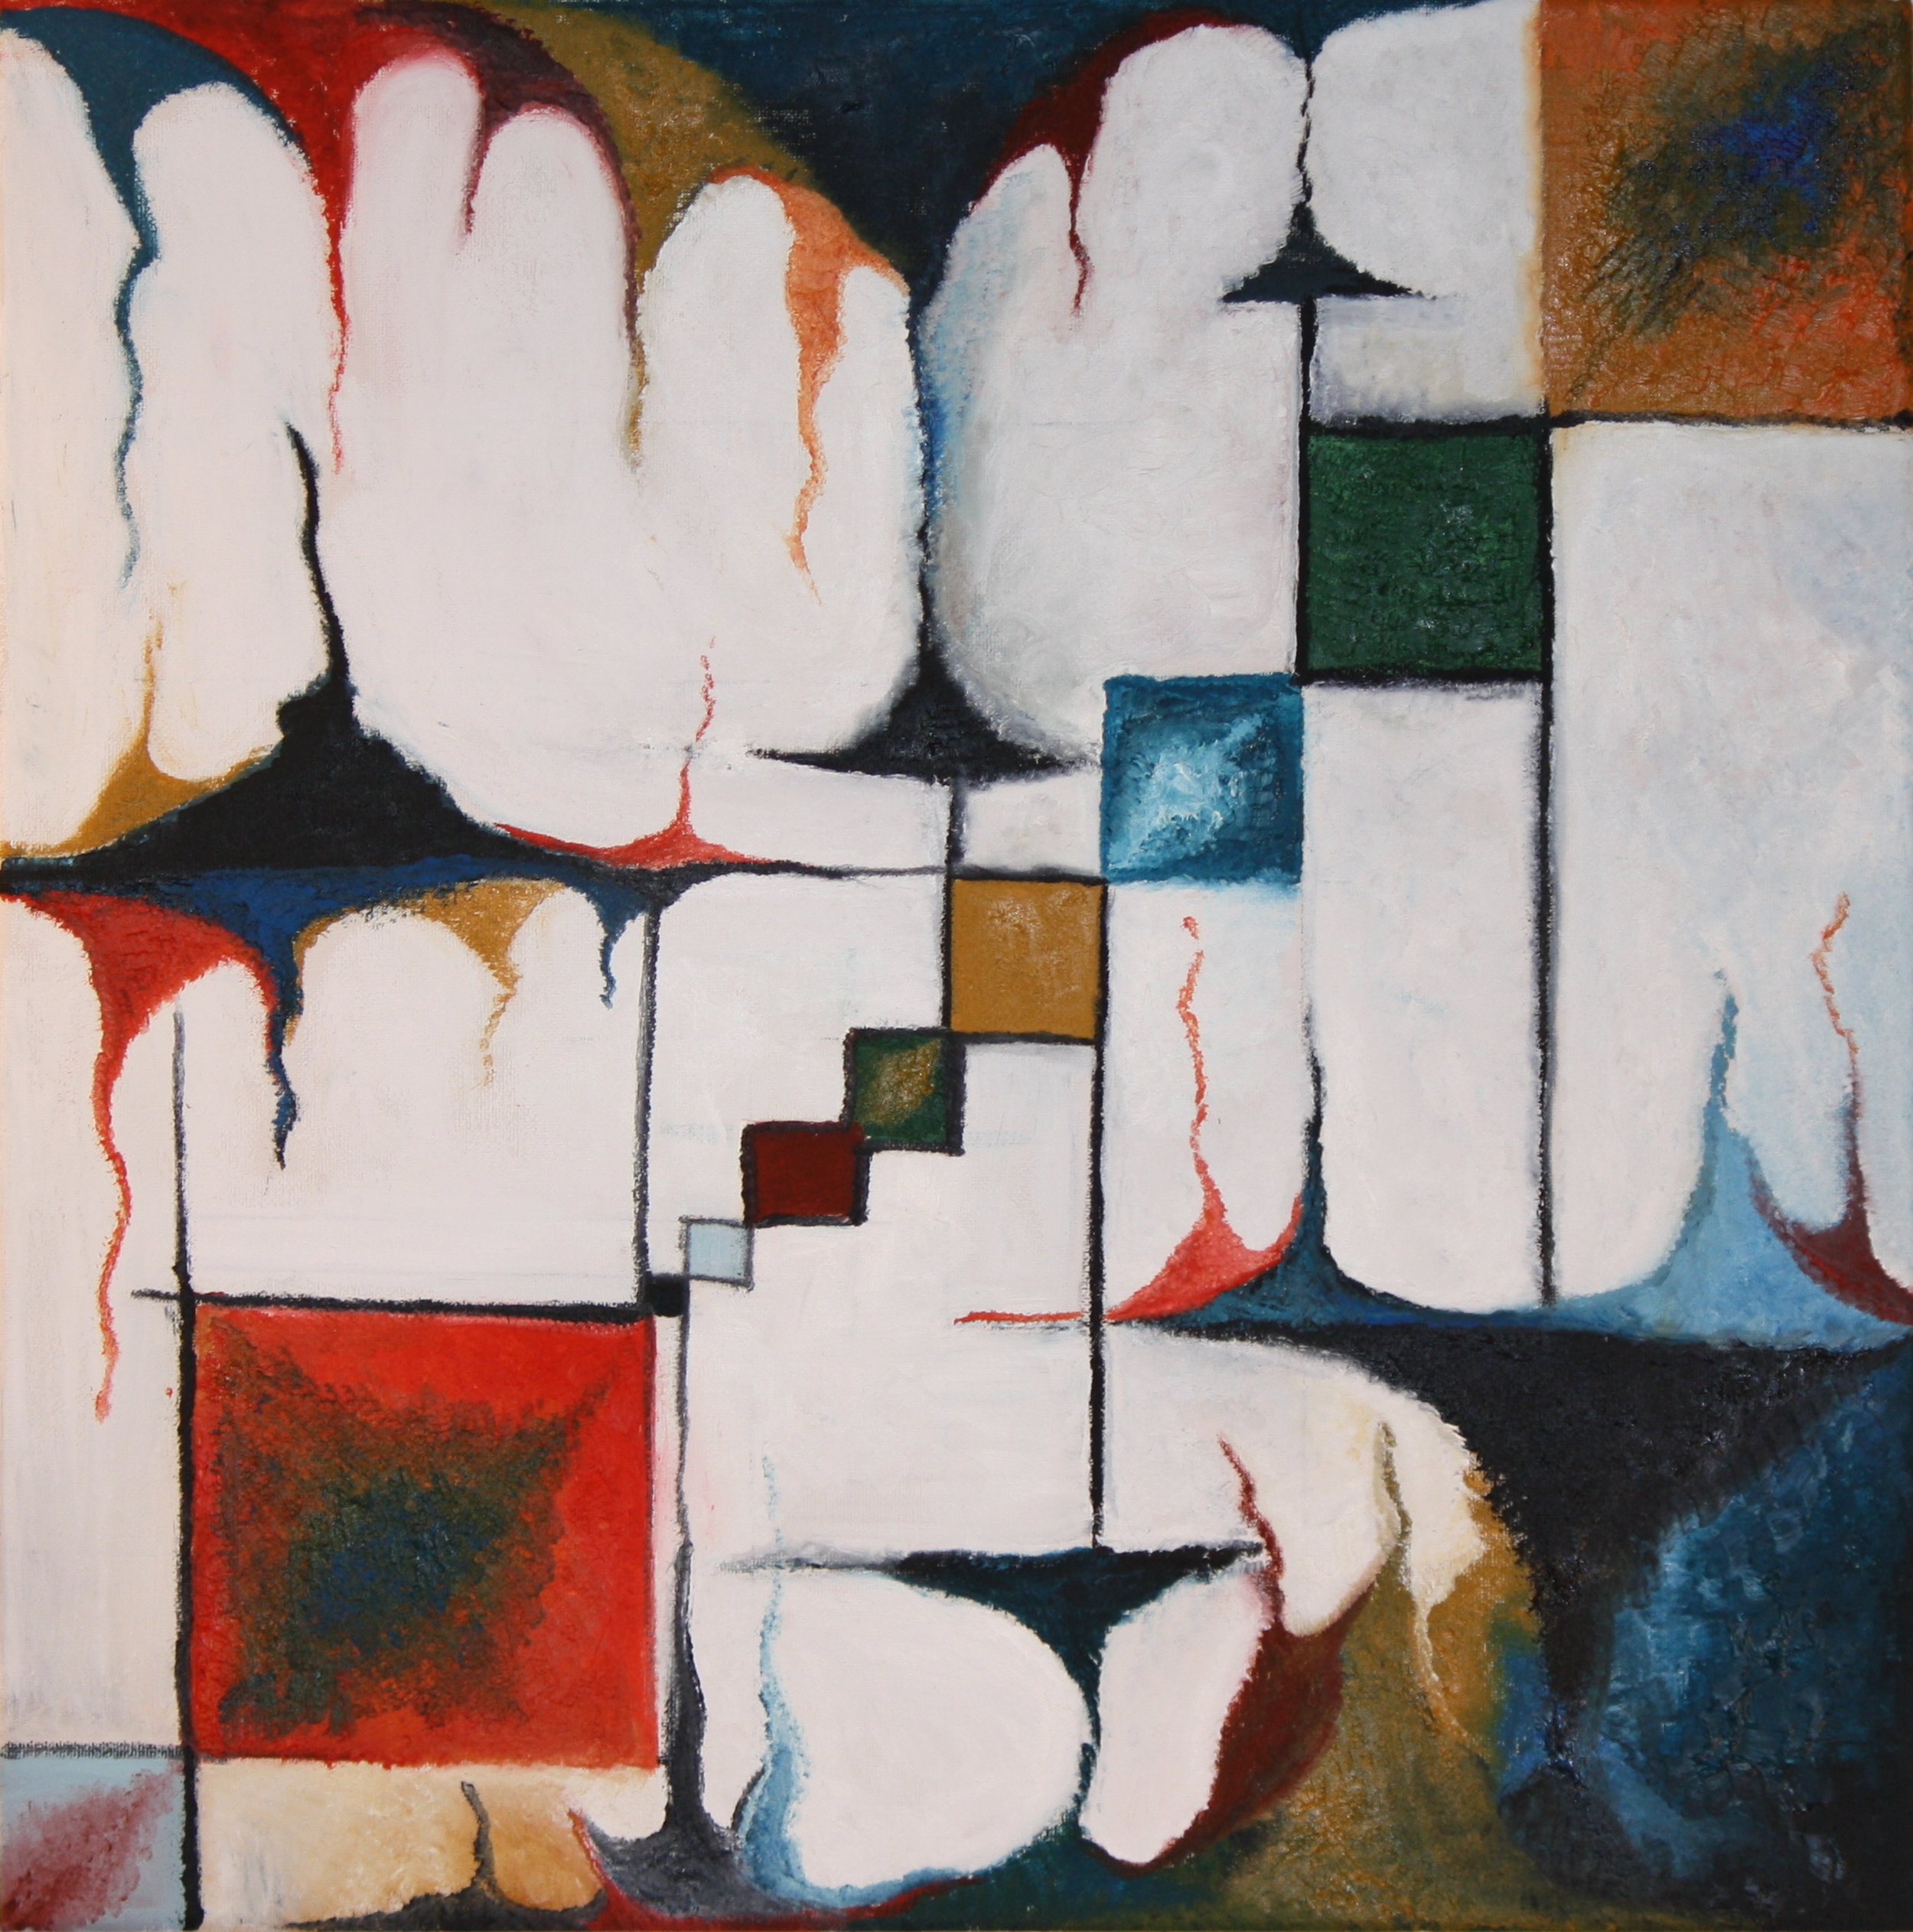 Space-and-time-geometric-oil-painting.jpg